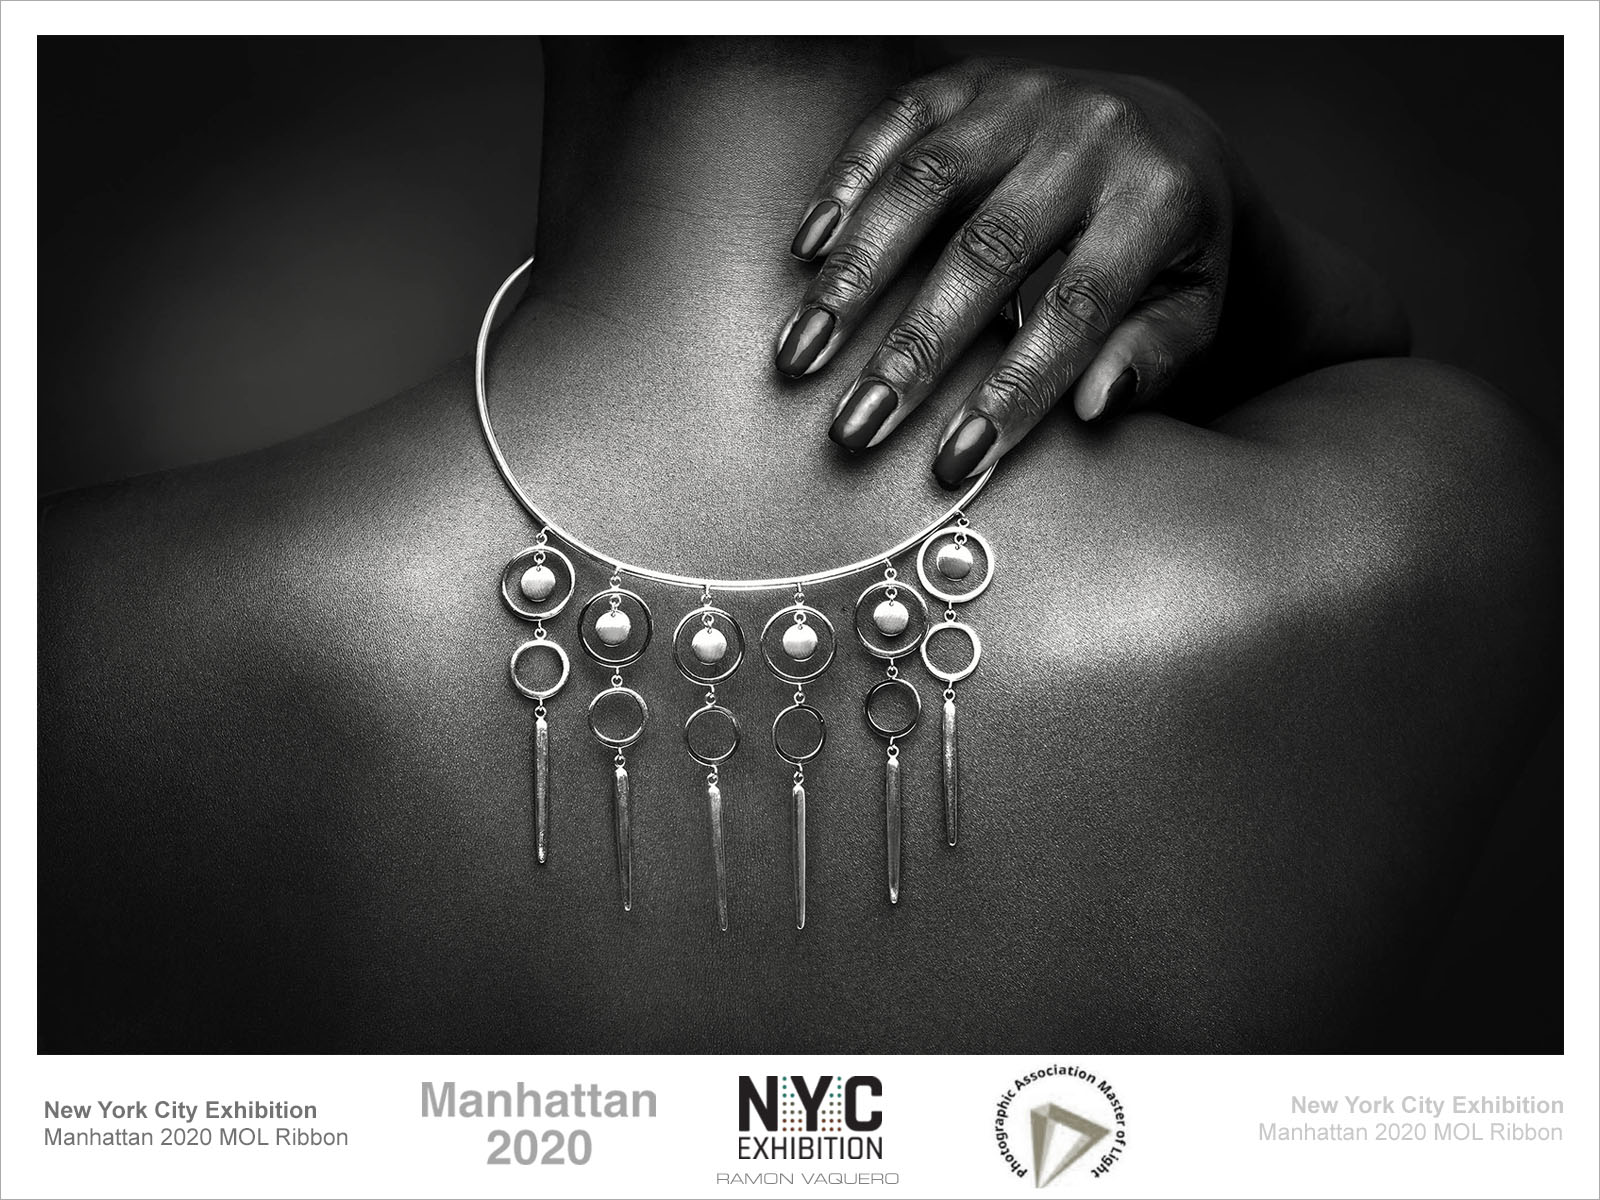 silver-back_ramon vaquero_NYC-exhibition-manhattan_2020_beauty_fashion